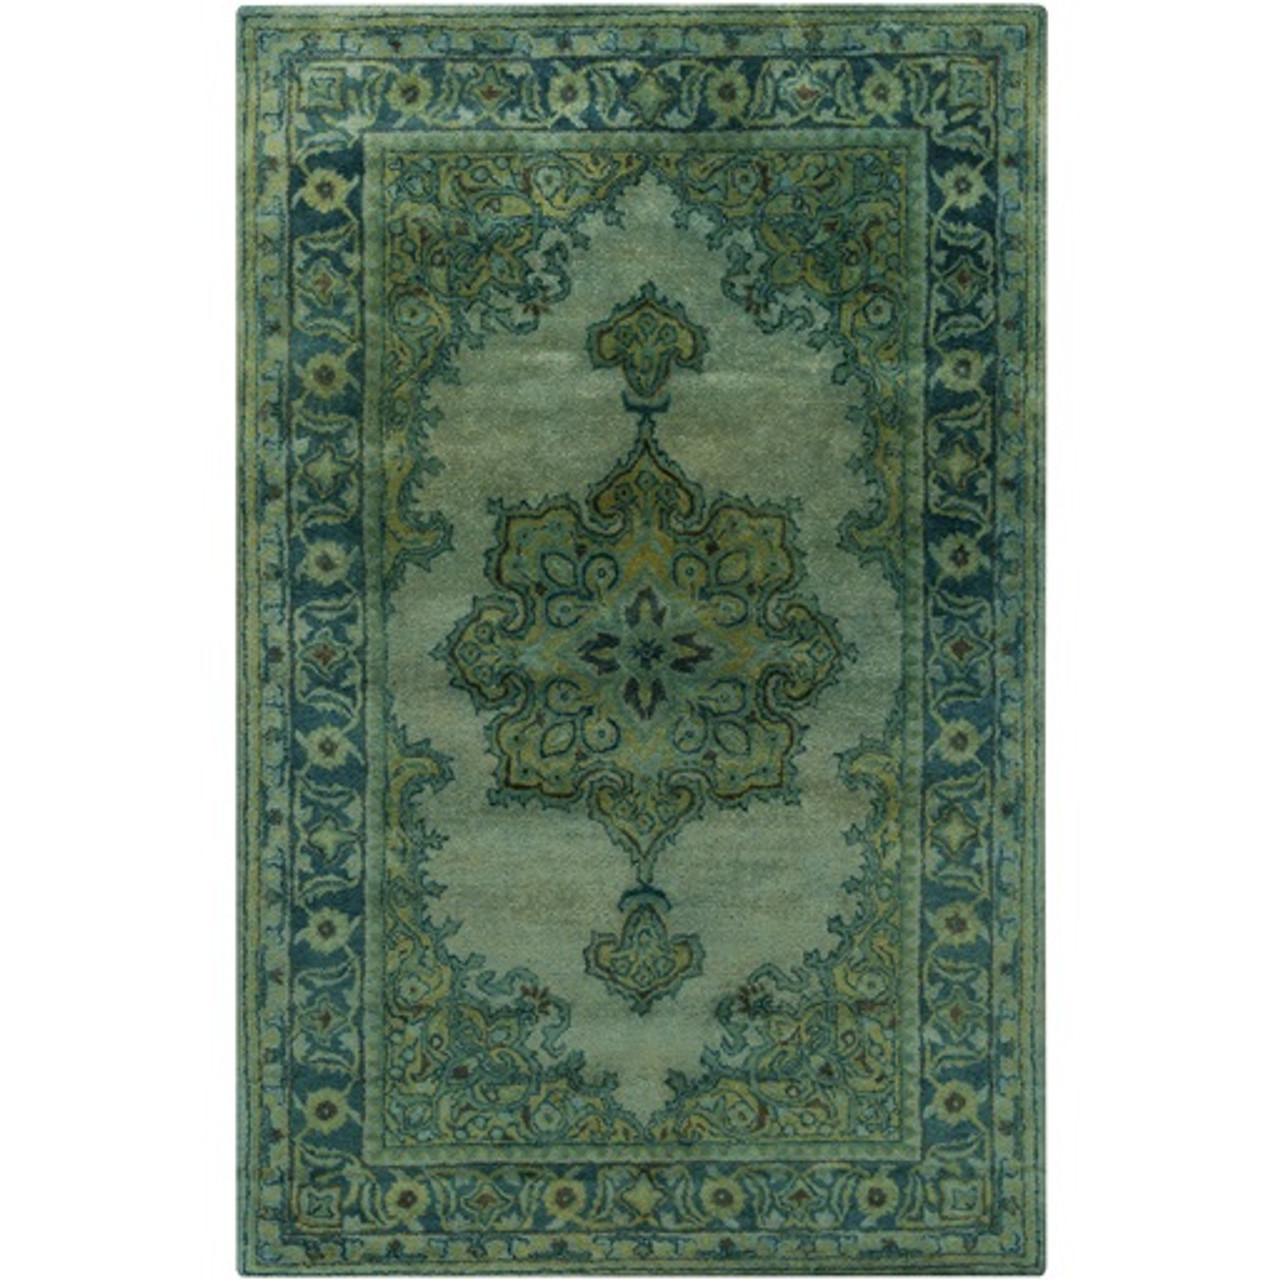 5 X 8 Cycladic Fantasy Emerald And Mint Green Hand Tufted Area Throw Rug 30991891